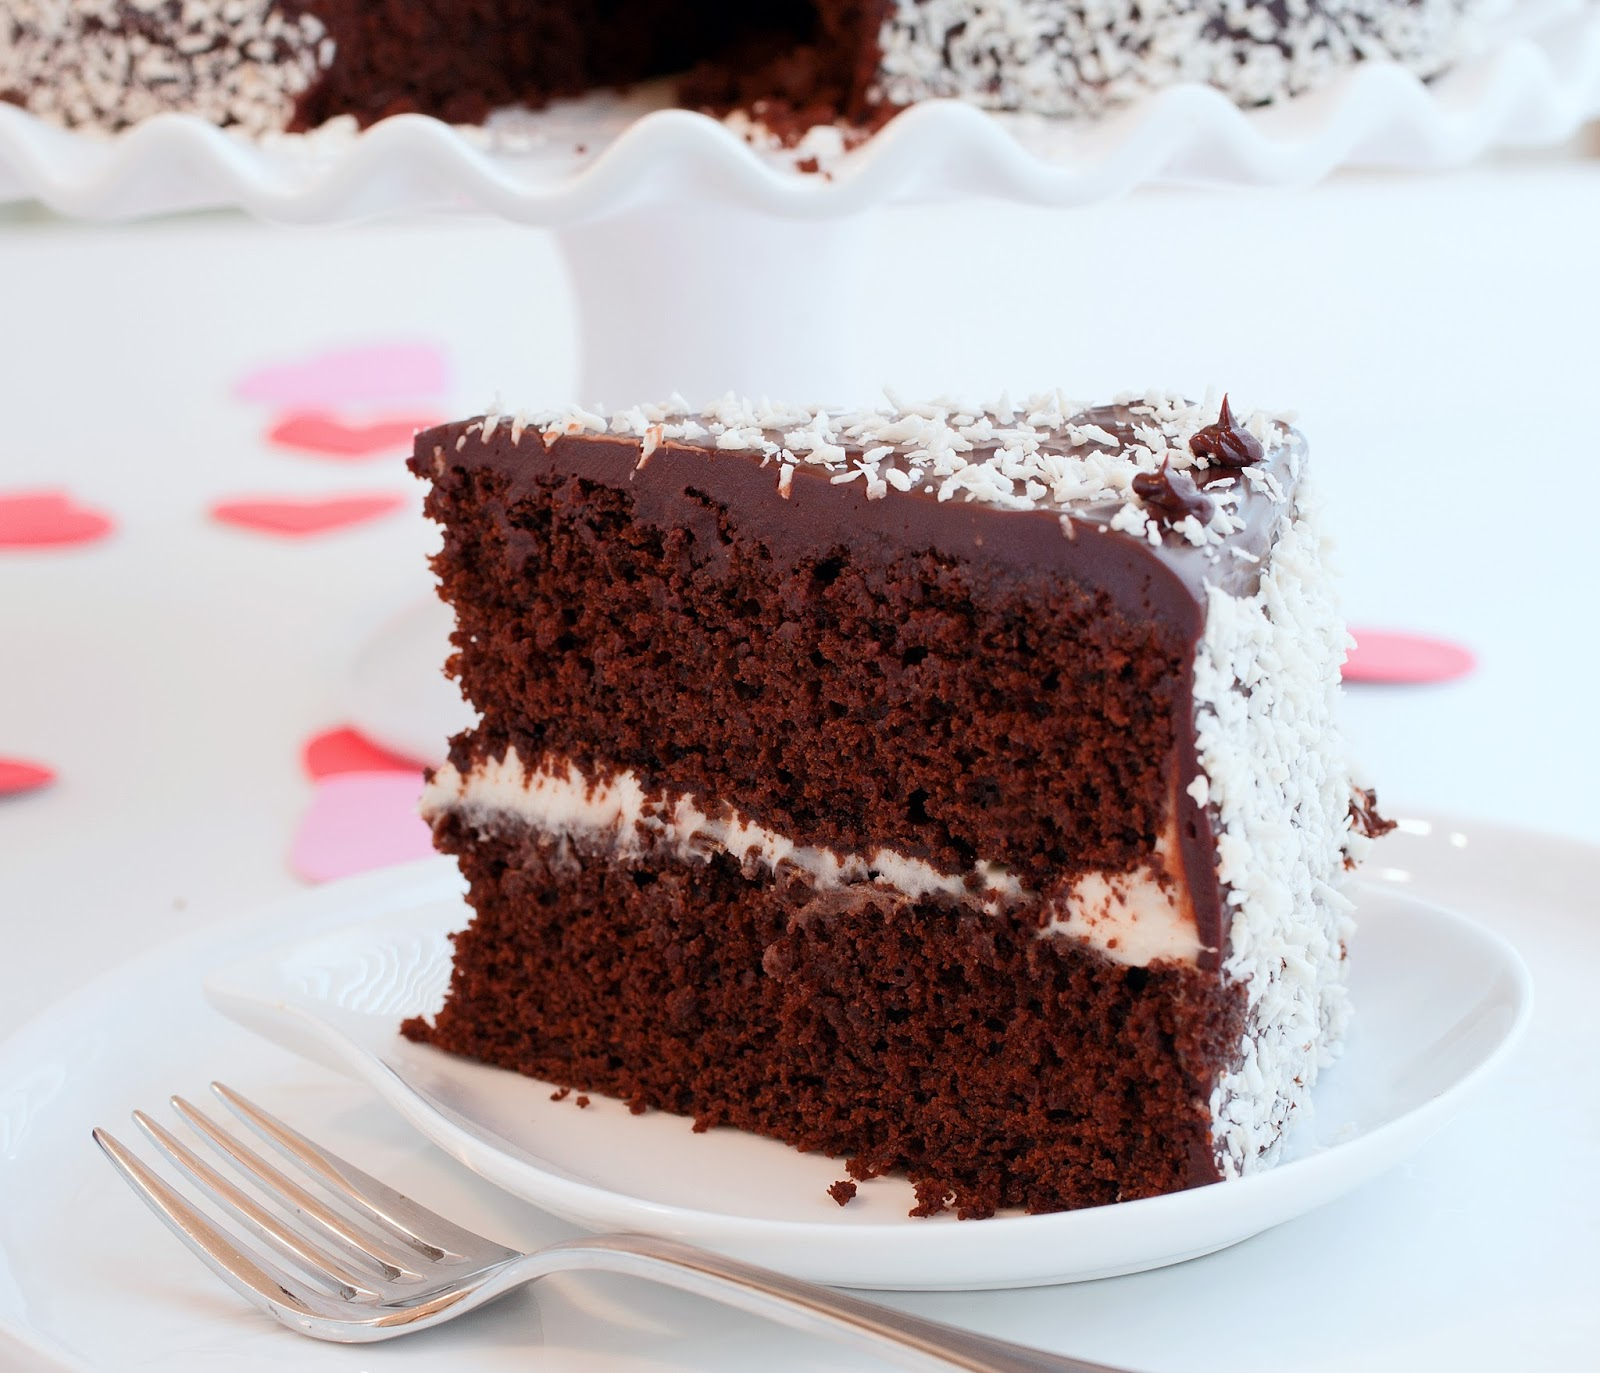 Tish Boyle Sweet Dreams: Love-Struck Chocolate Cake with White ...